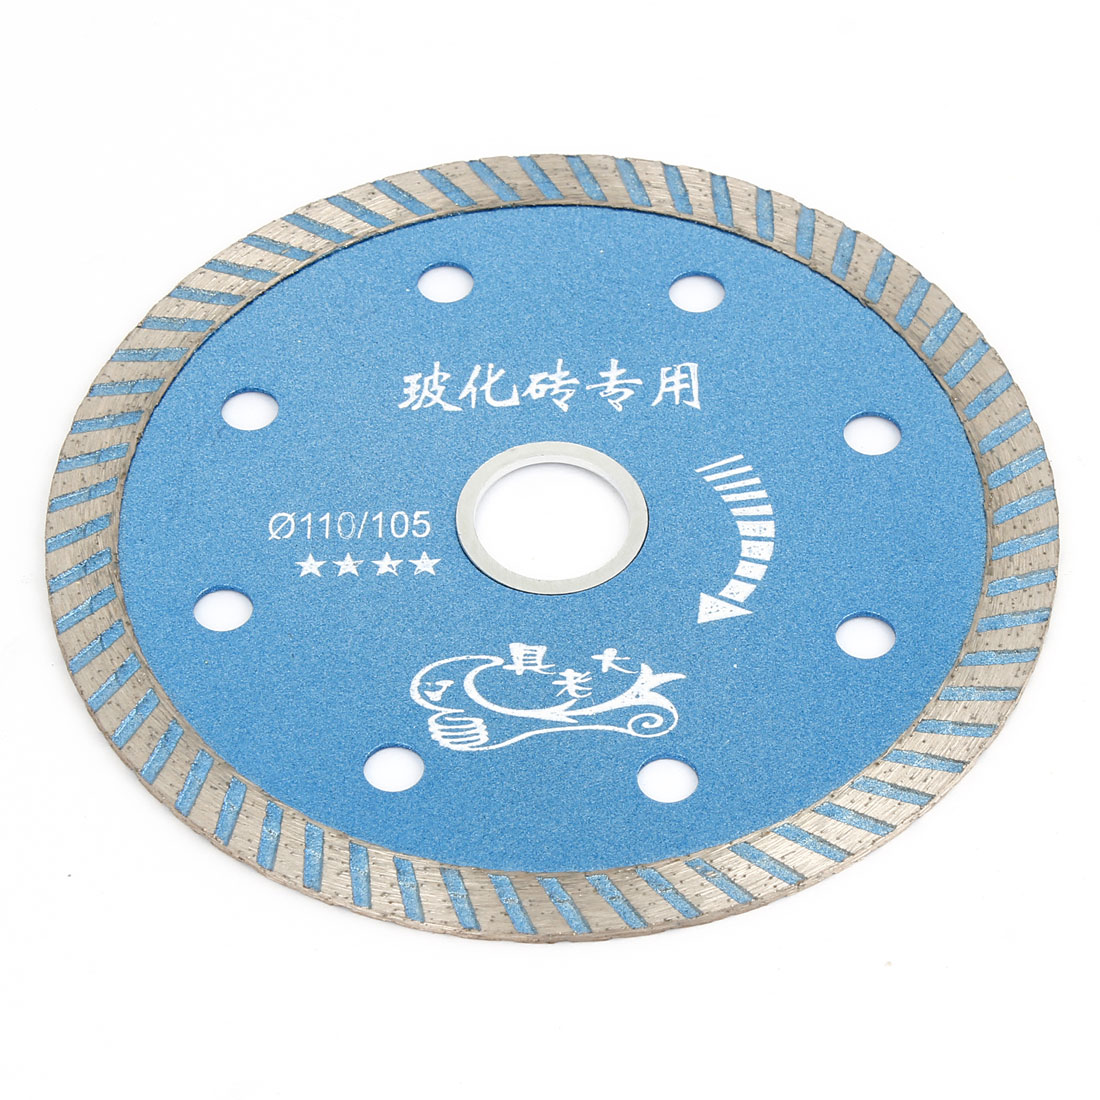 105mm Diameter Sintered Diamond Saw Flake Masonry Cutting Disc Blue